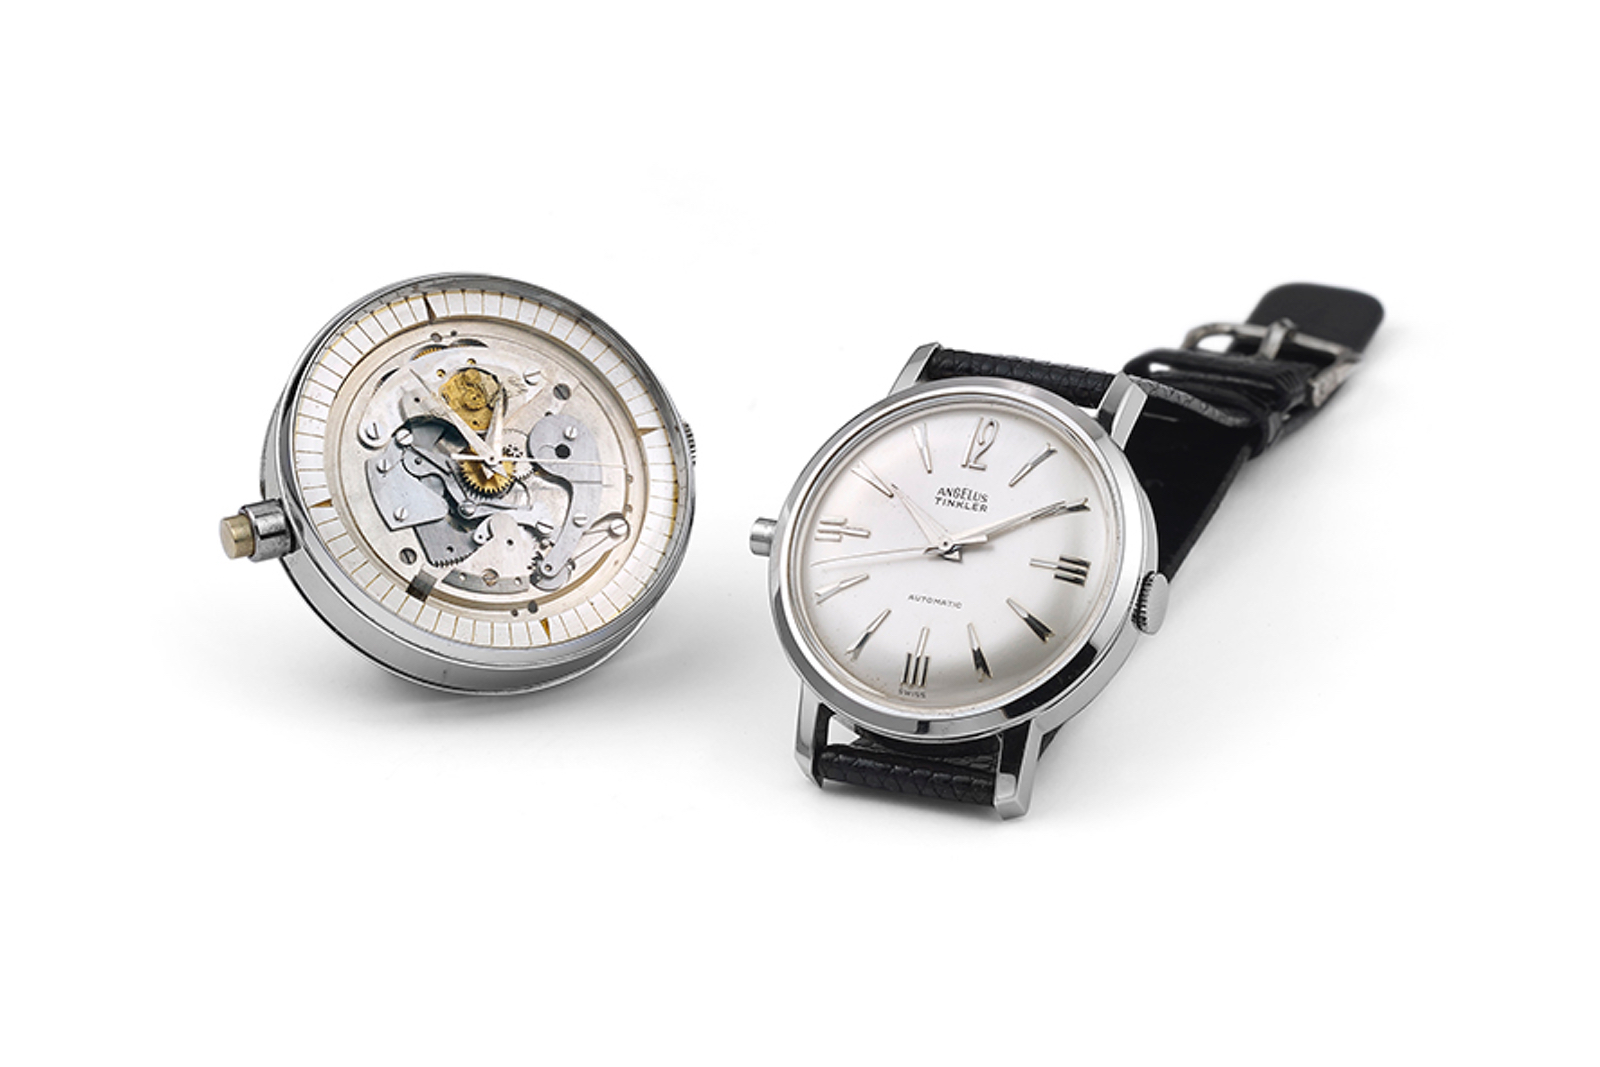 The Angelus Tinkler and exhibition dial. Photo Courtesy of Professional Watches